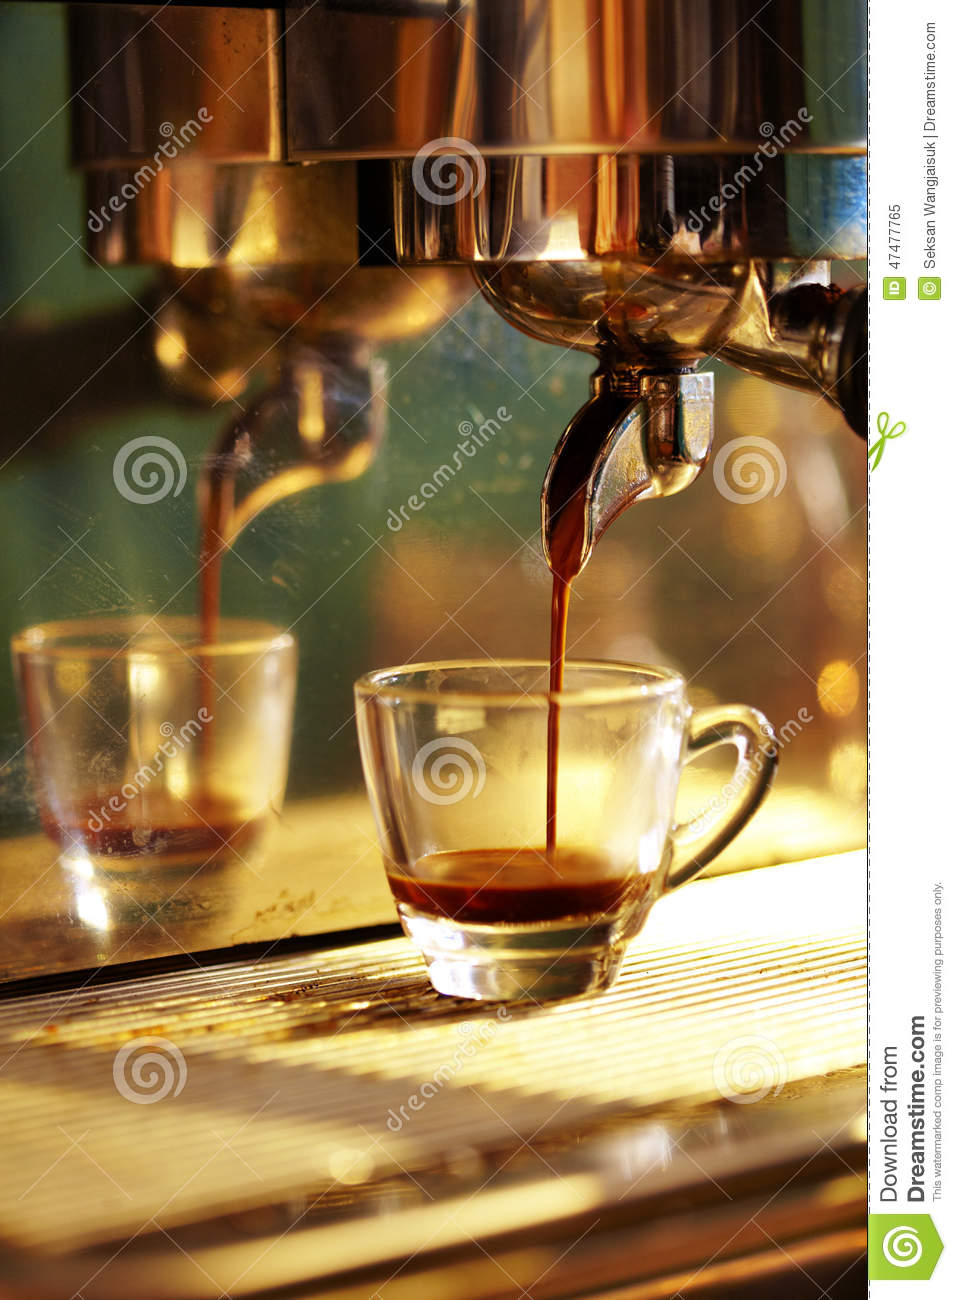 close up of espresso machine making coffee royalty free stock image 65421040. Black Bedroom Furniture Sets. Home Design Ideas